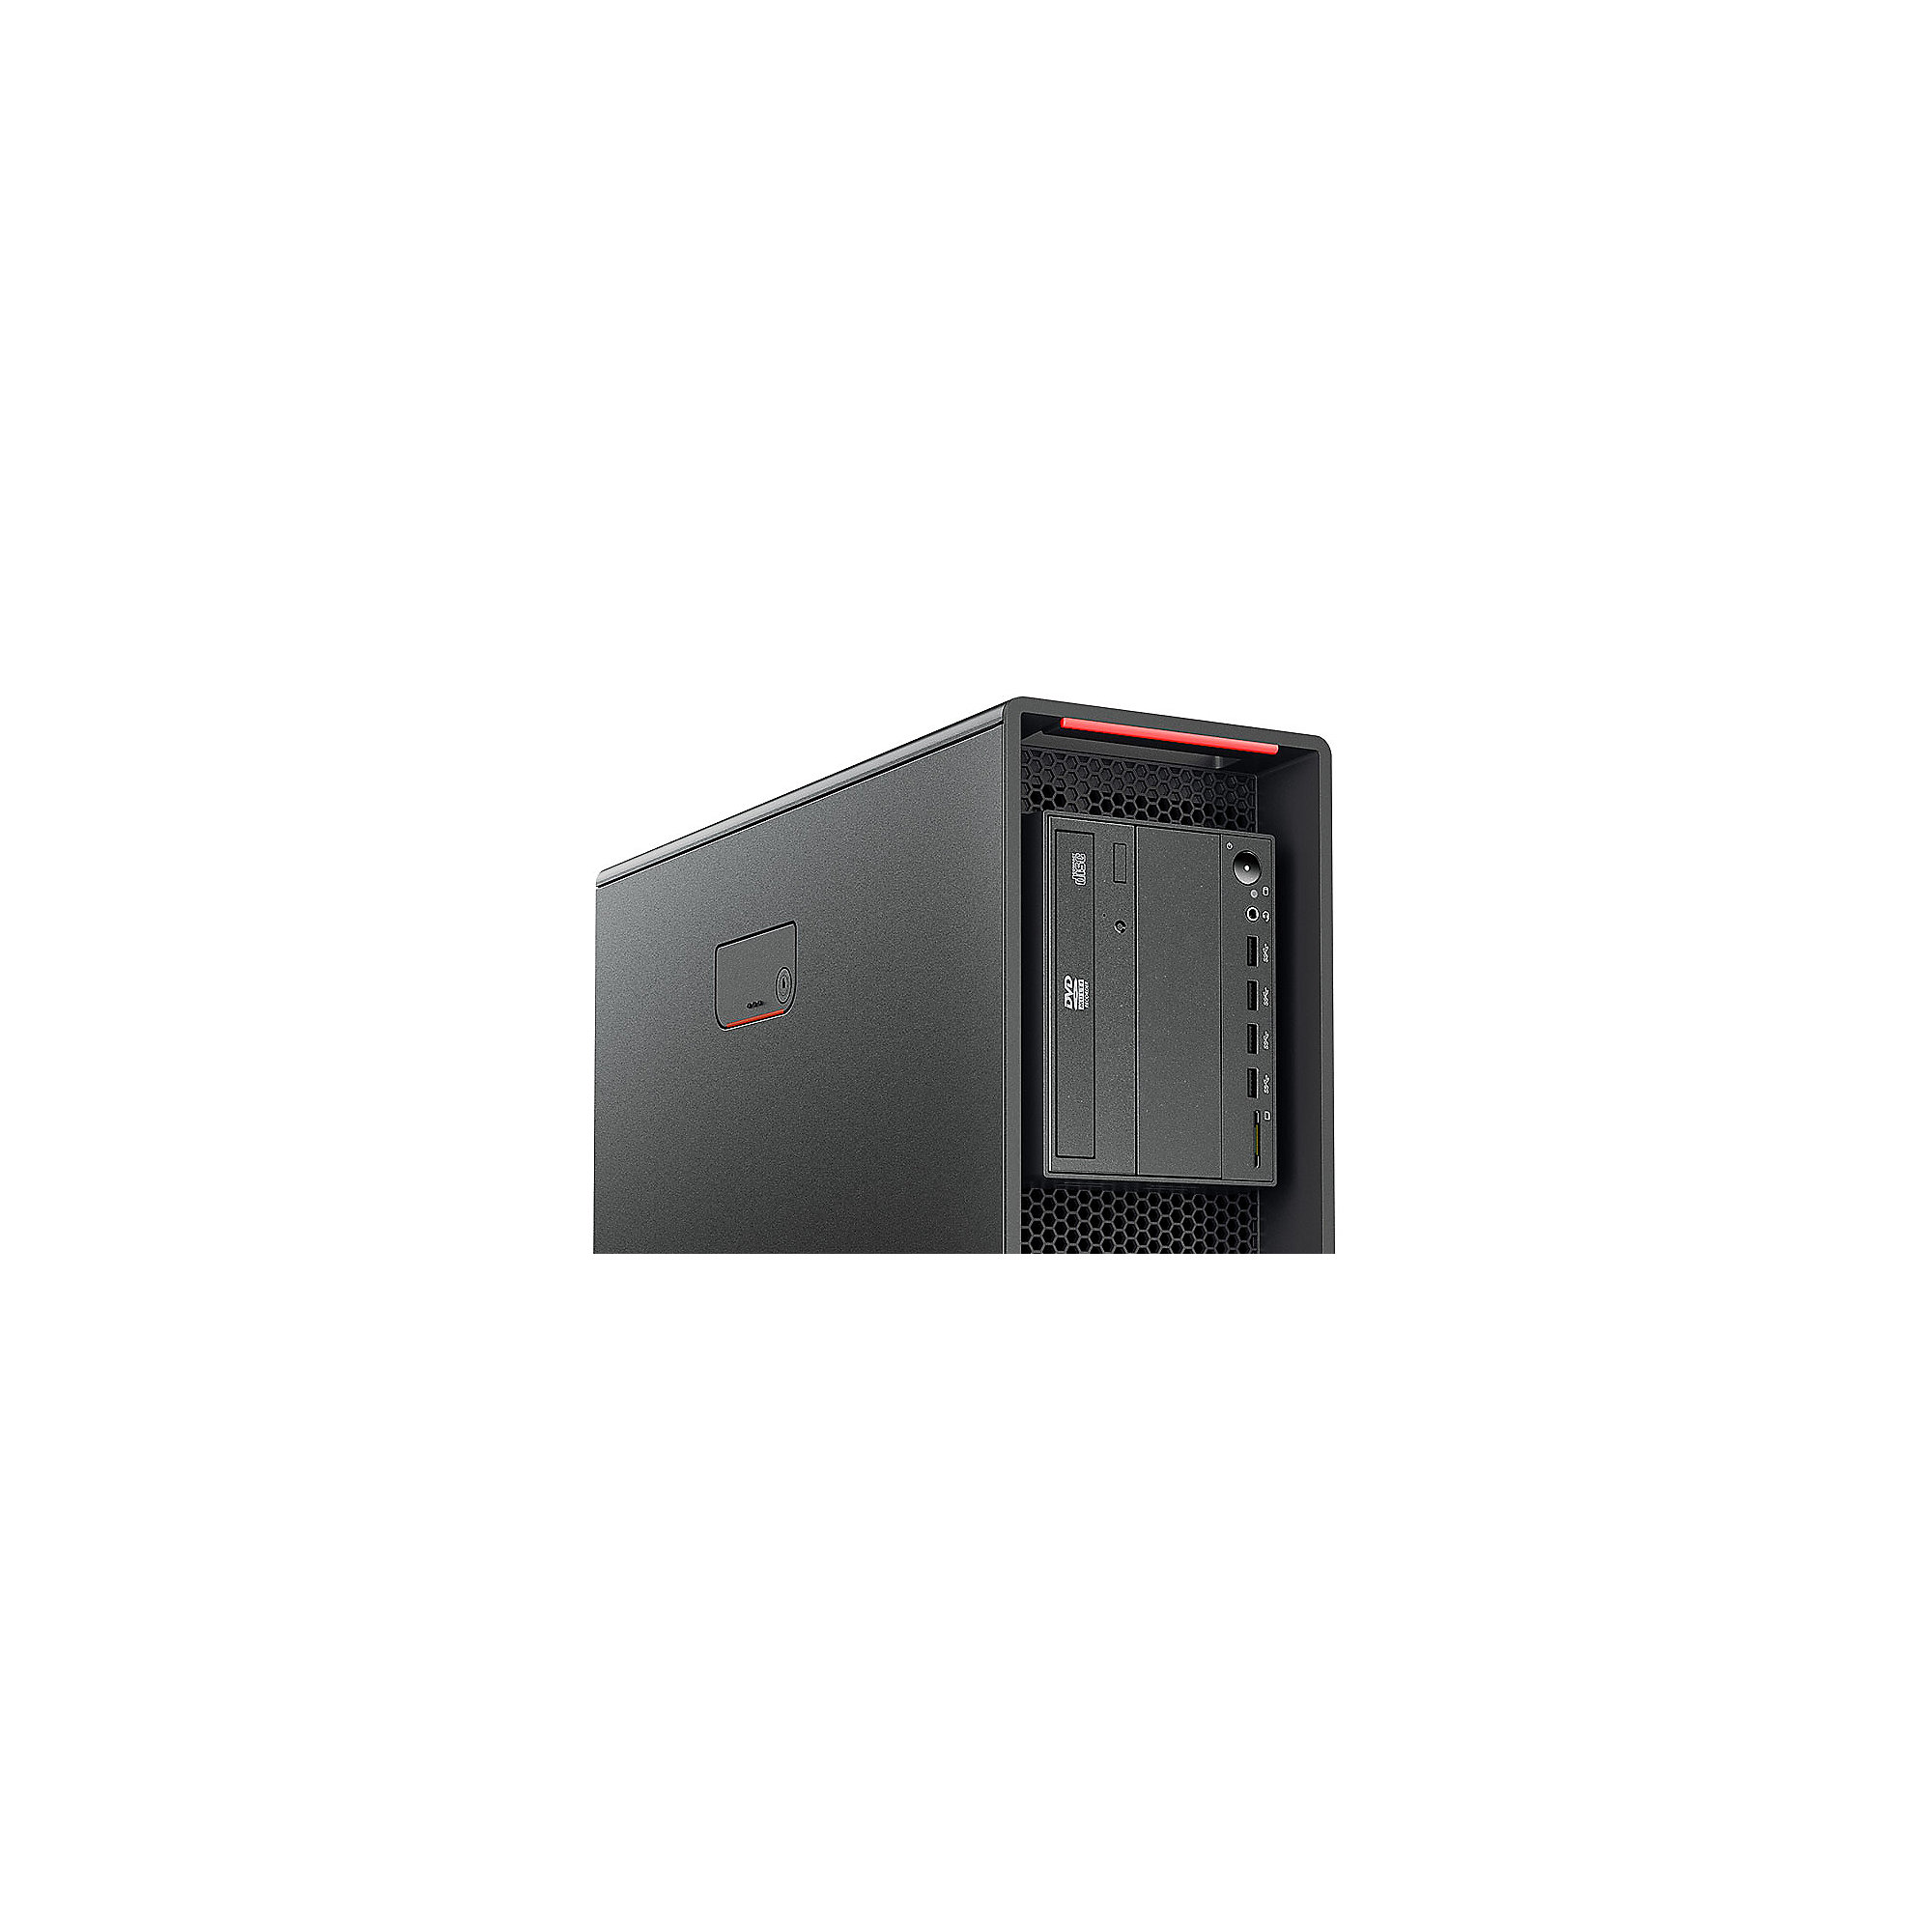 Lenovo ThinkStation P520 Tower Xeon W-2123 8GB/256GB SSD W10P